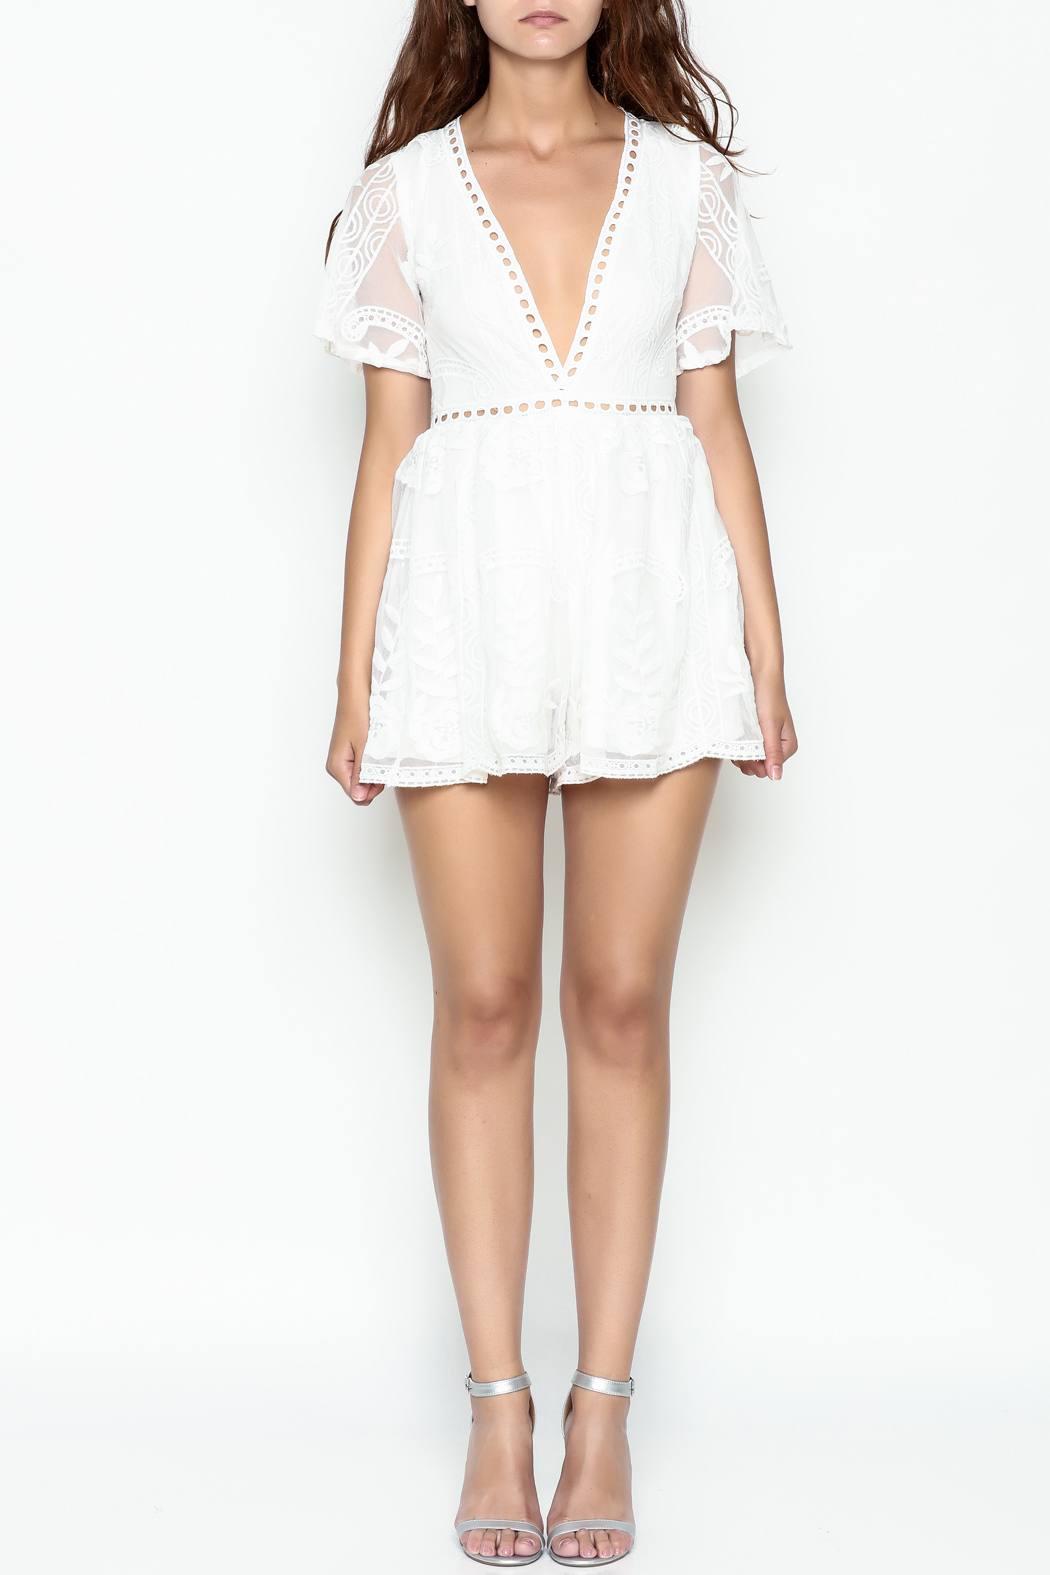 L'atiste Lace White Romper - Front Full Image